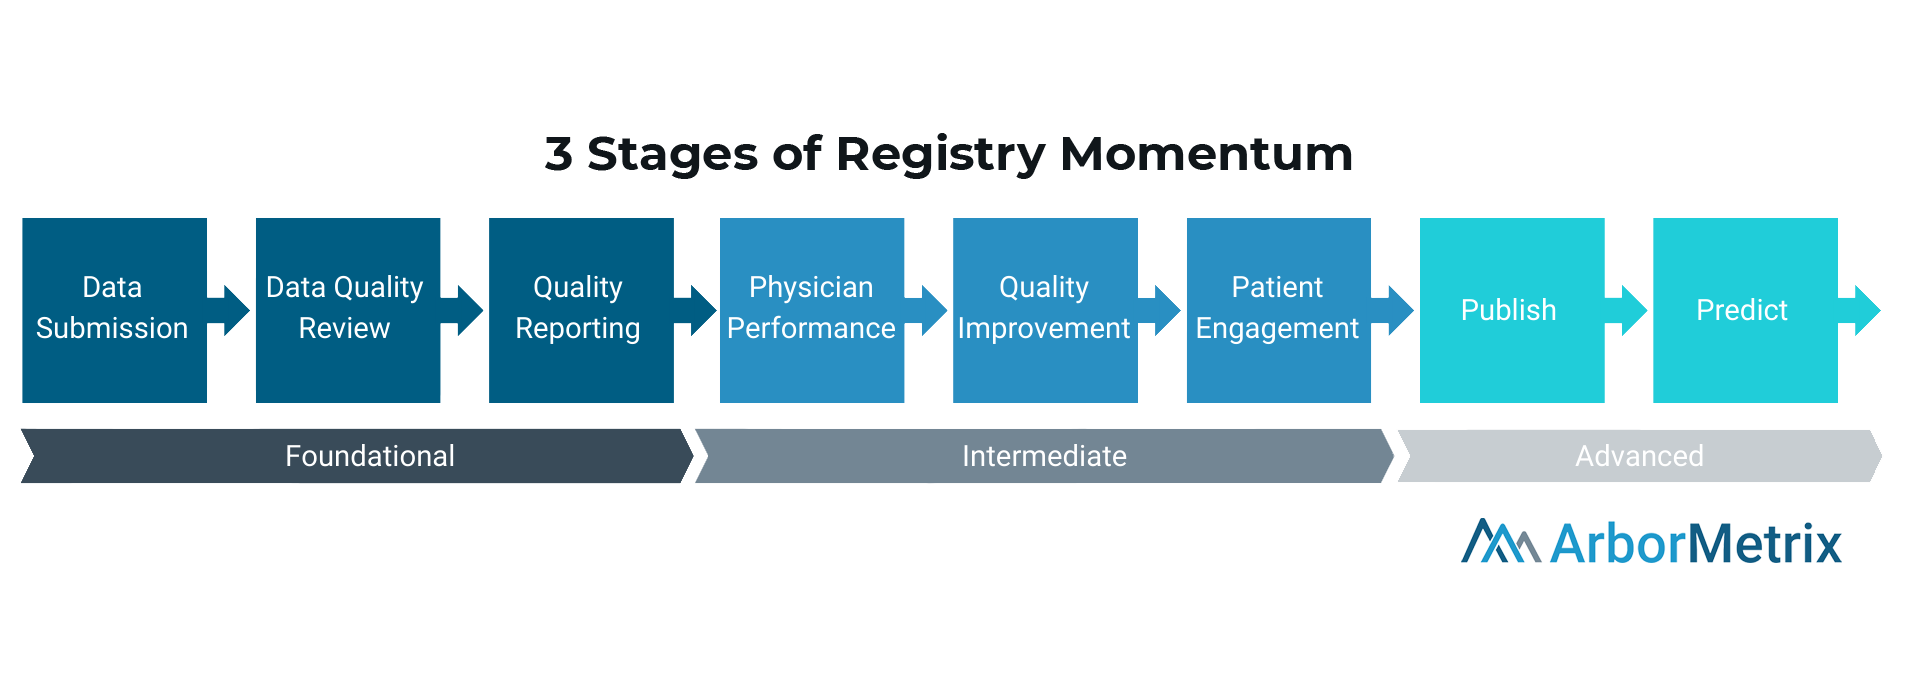 3 Stages of Registry Momentum